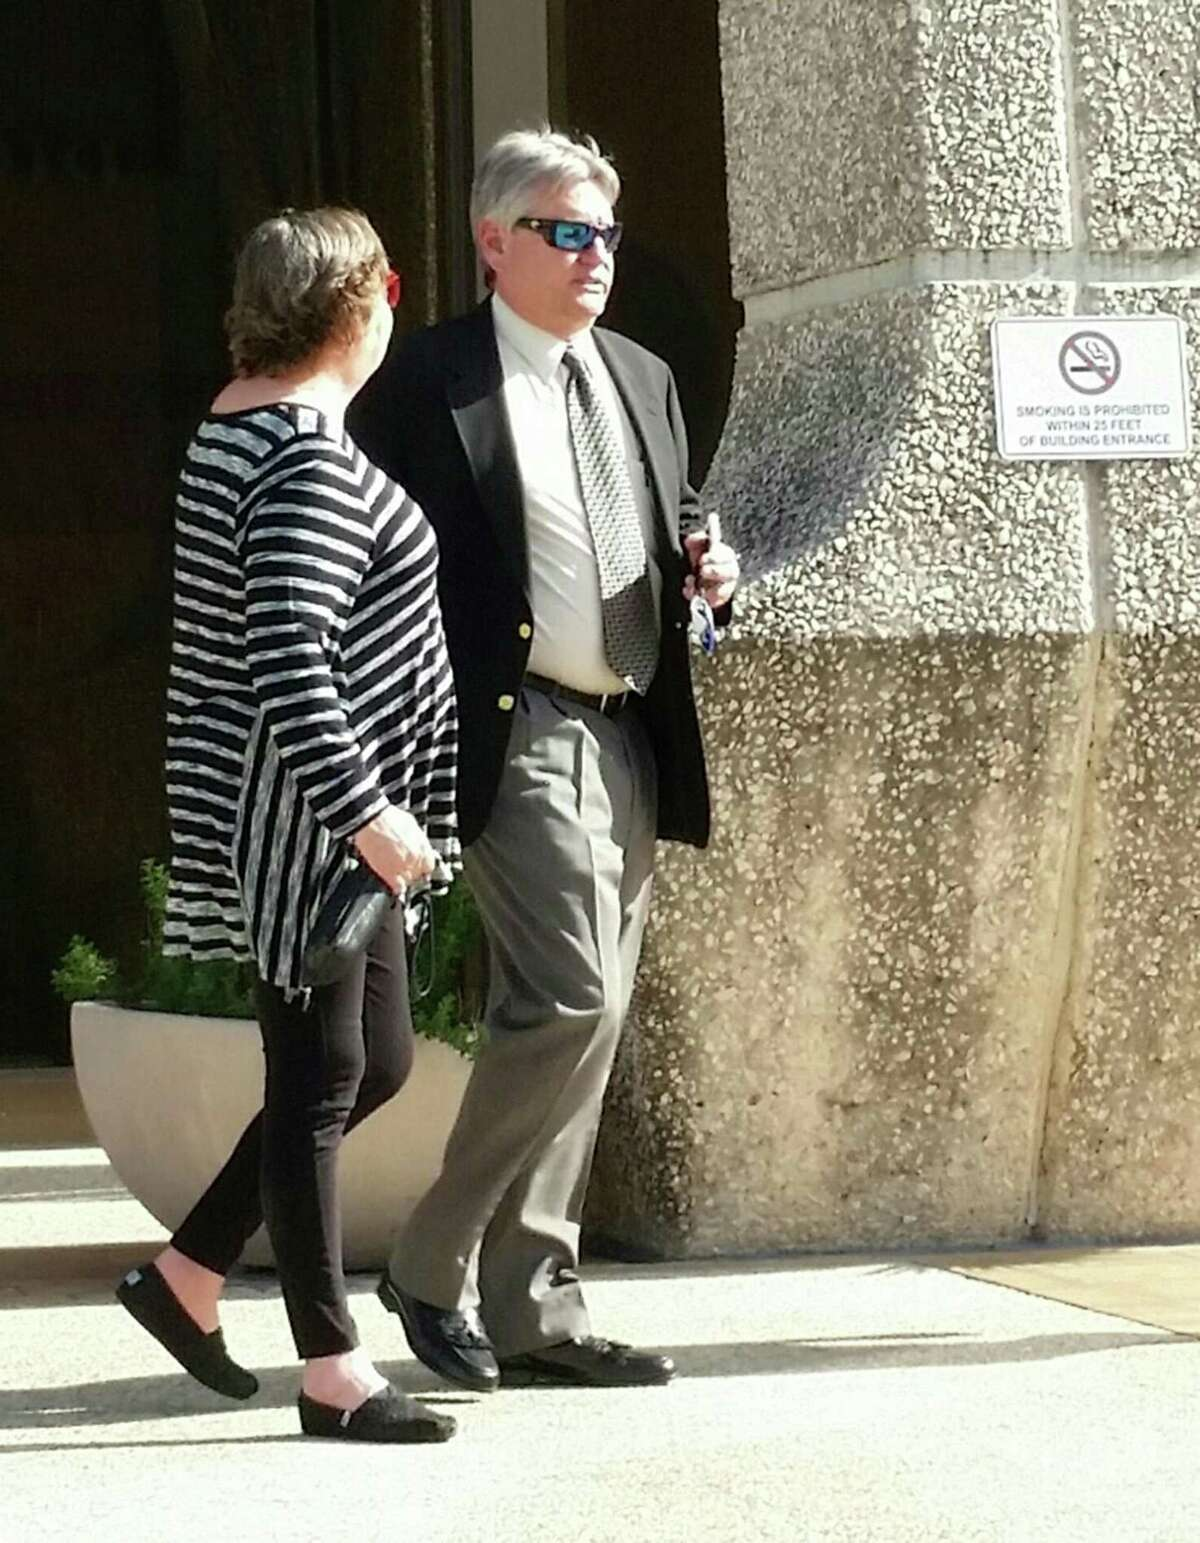 Curtis DeBerry had pleaded guilty to aiding and abetting his wife to conceal assets during a bankruptcy that was tied to his failed Progreso Produce, which was based in Boerne.